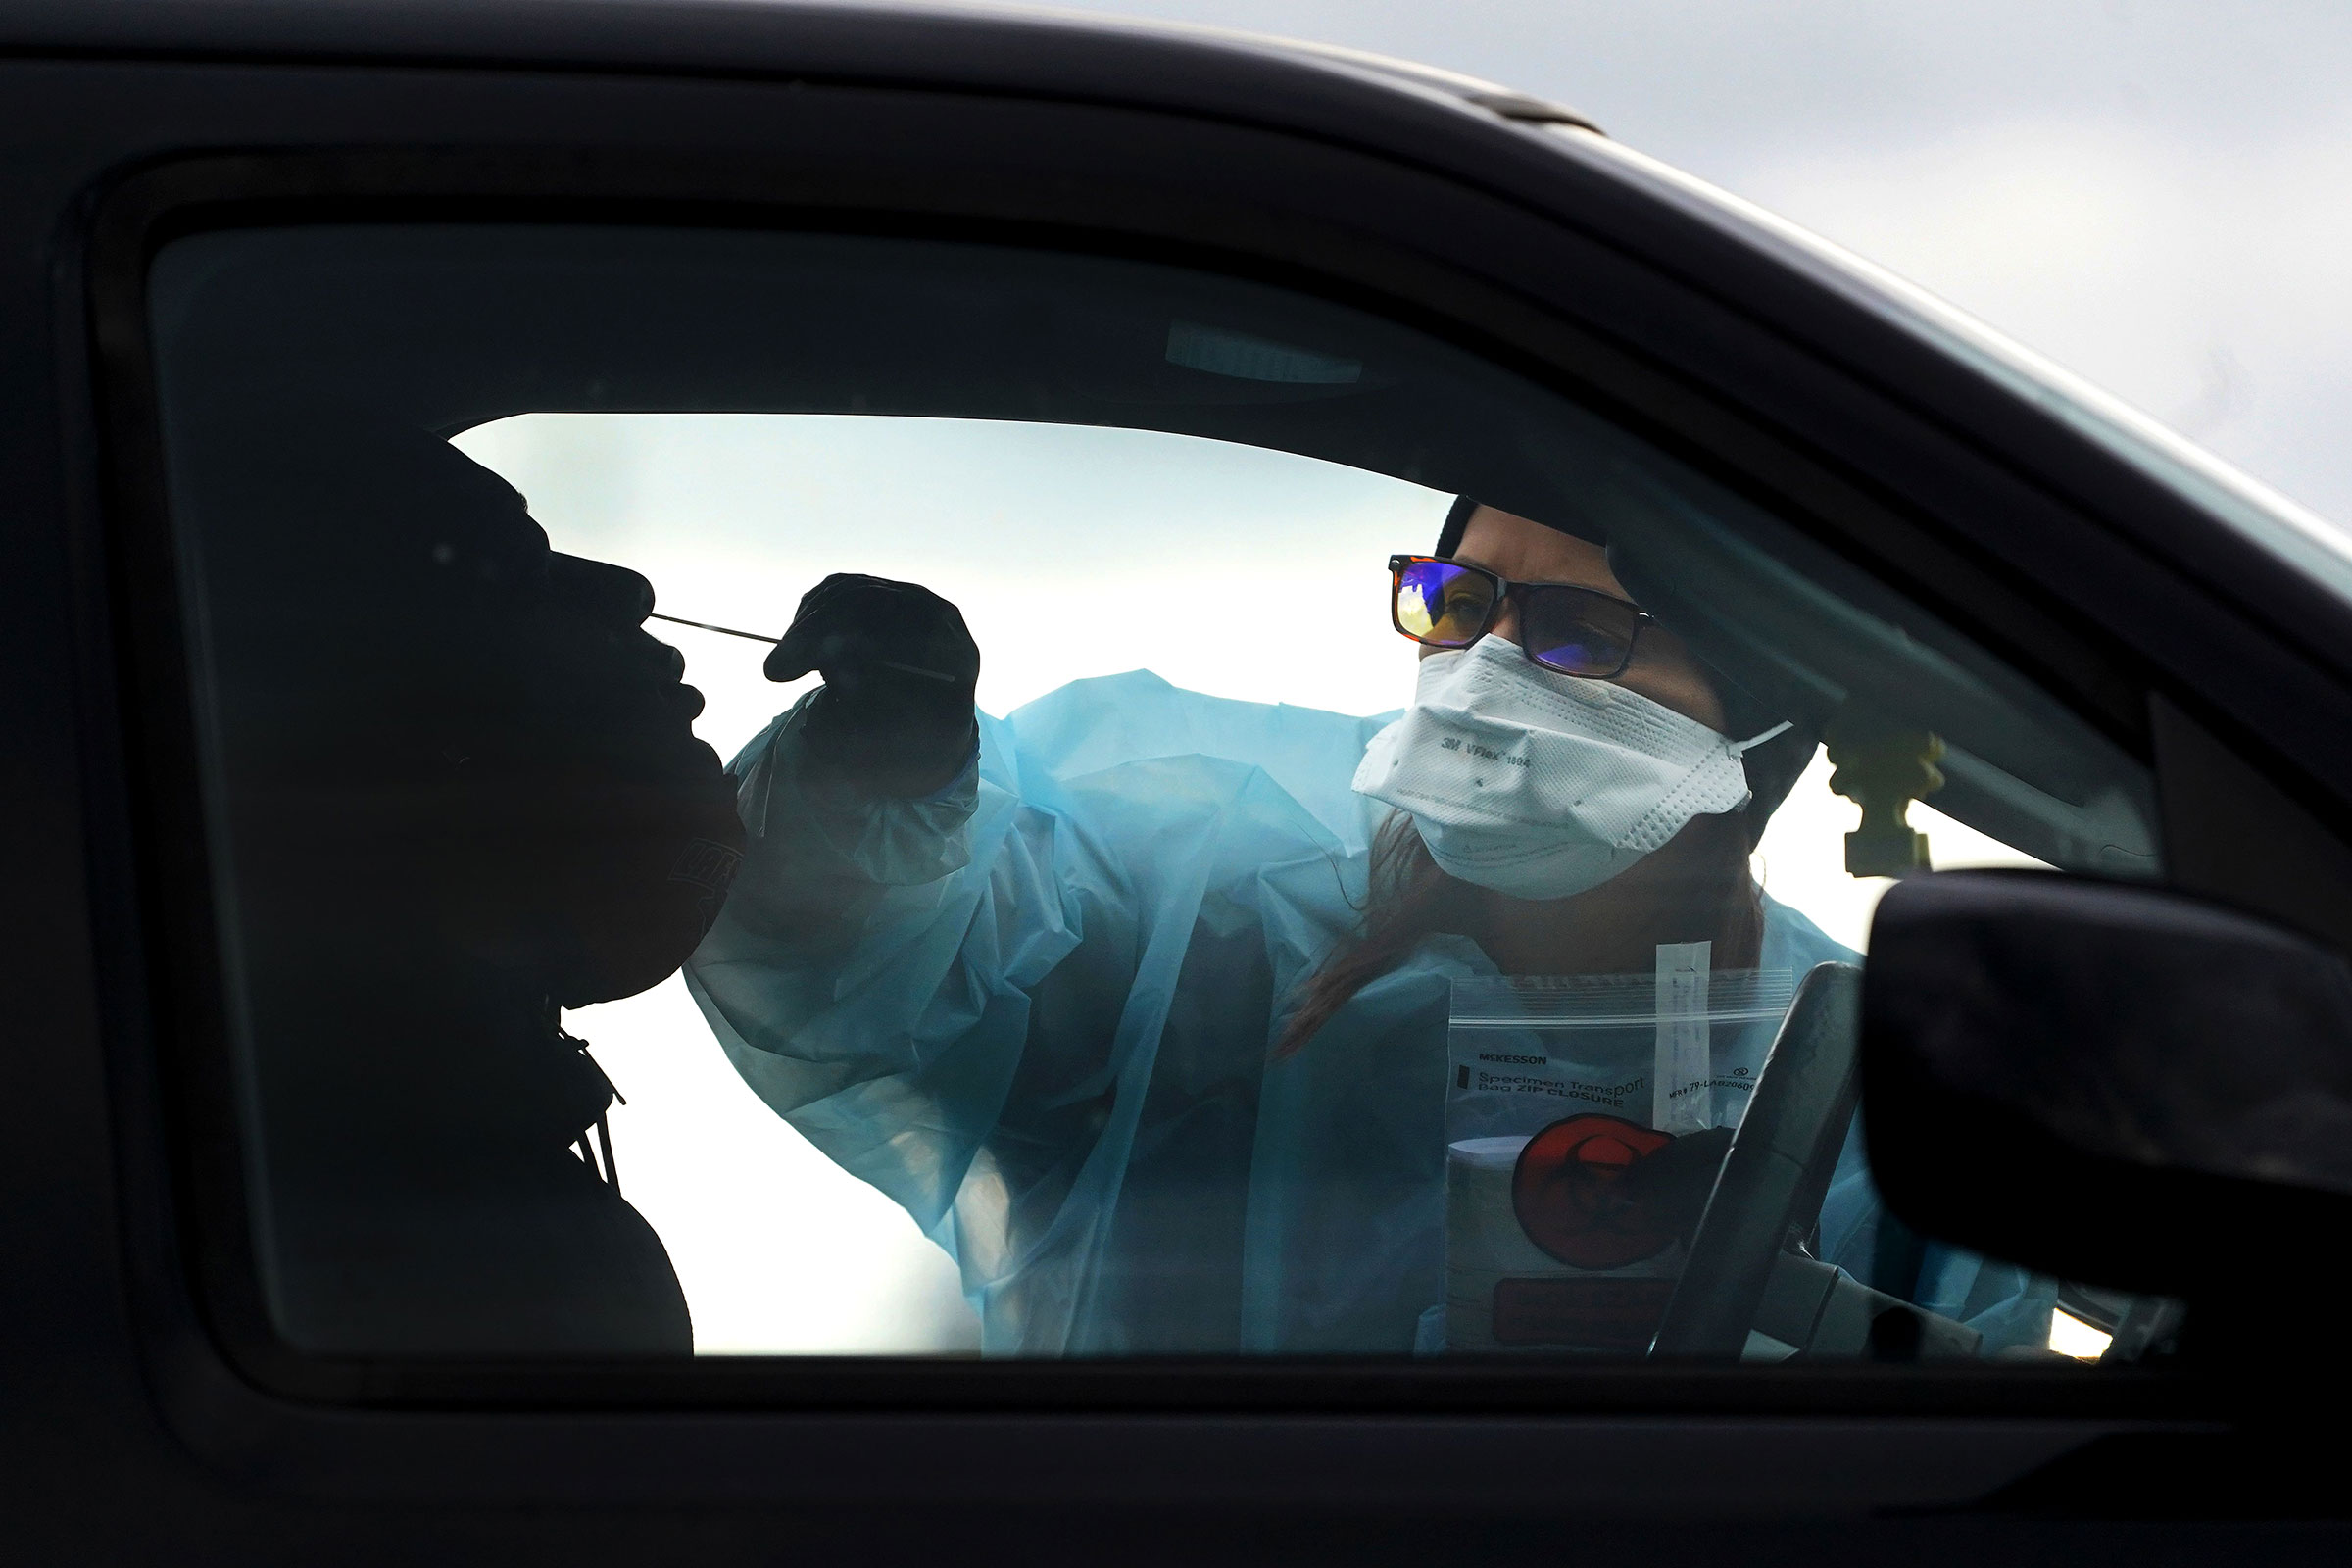 A healthcare worker administers a Covid-19 test at the William Penn Highway Park & Ride on December 2 in Easton, Pennsylvania.